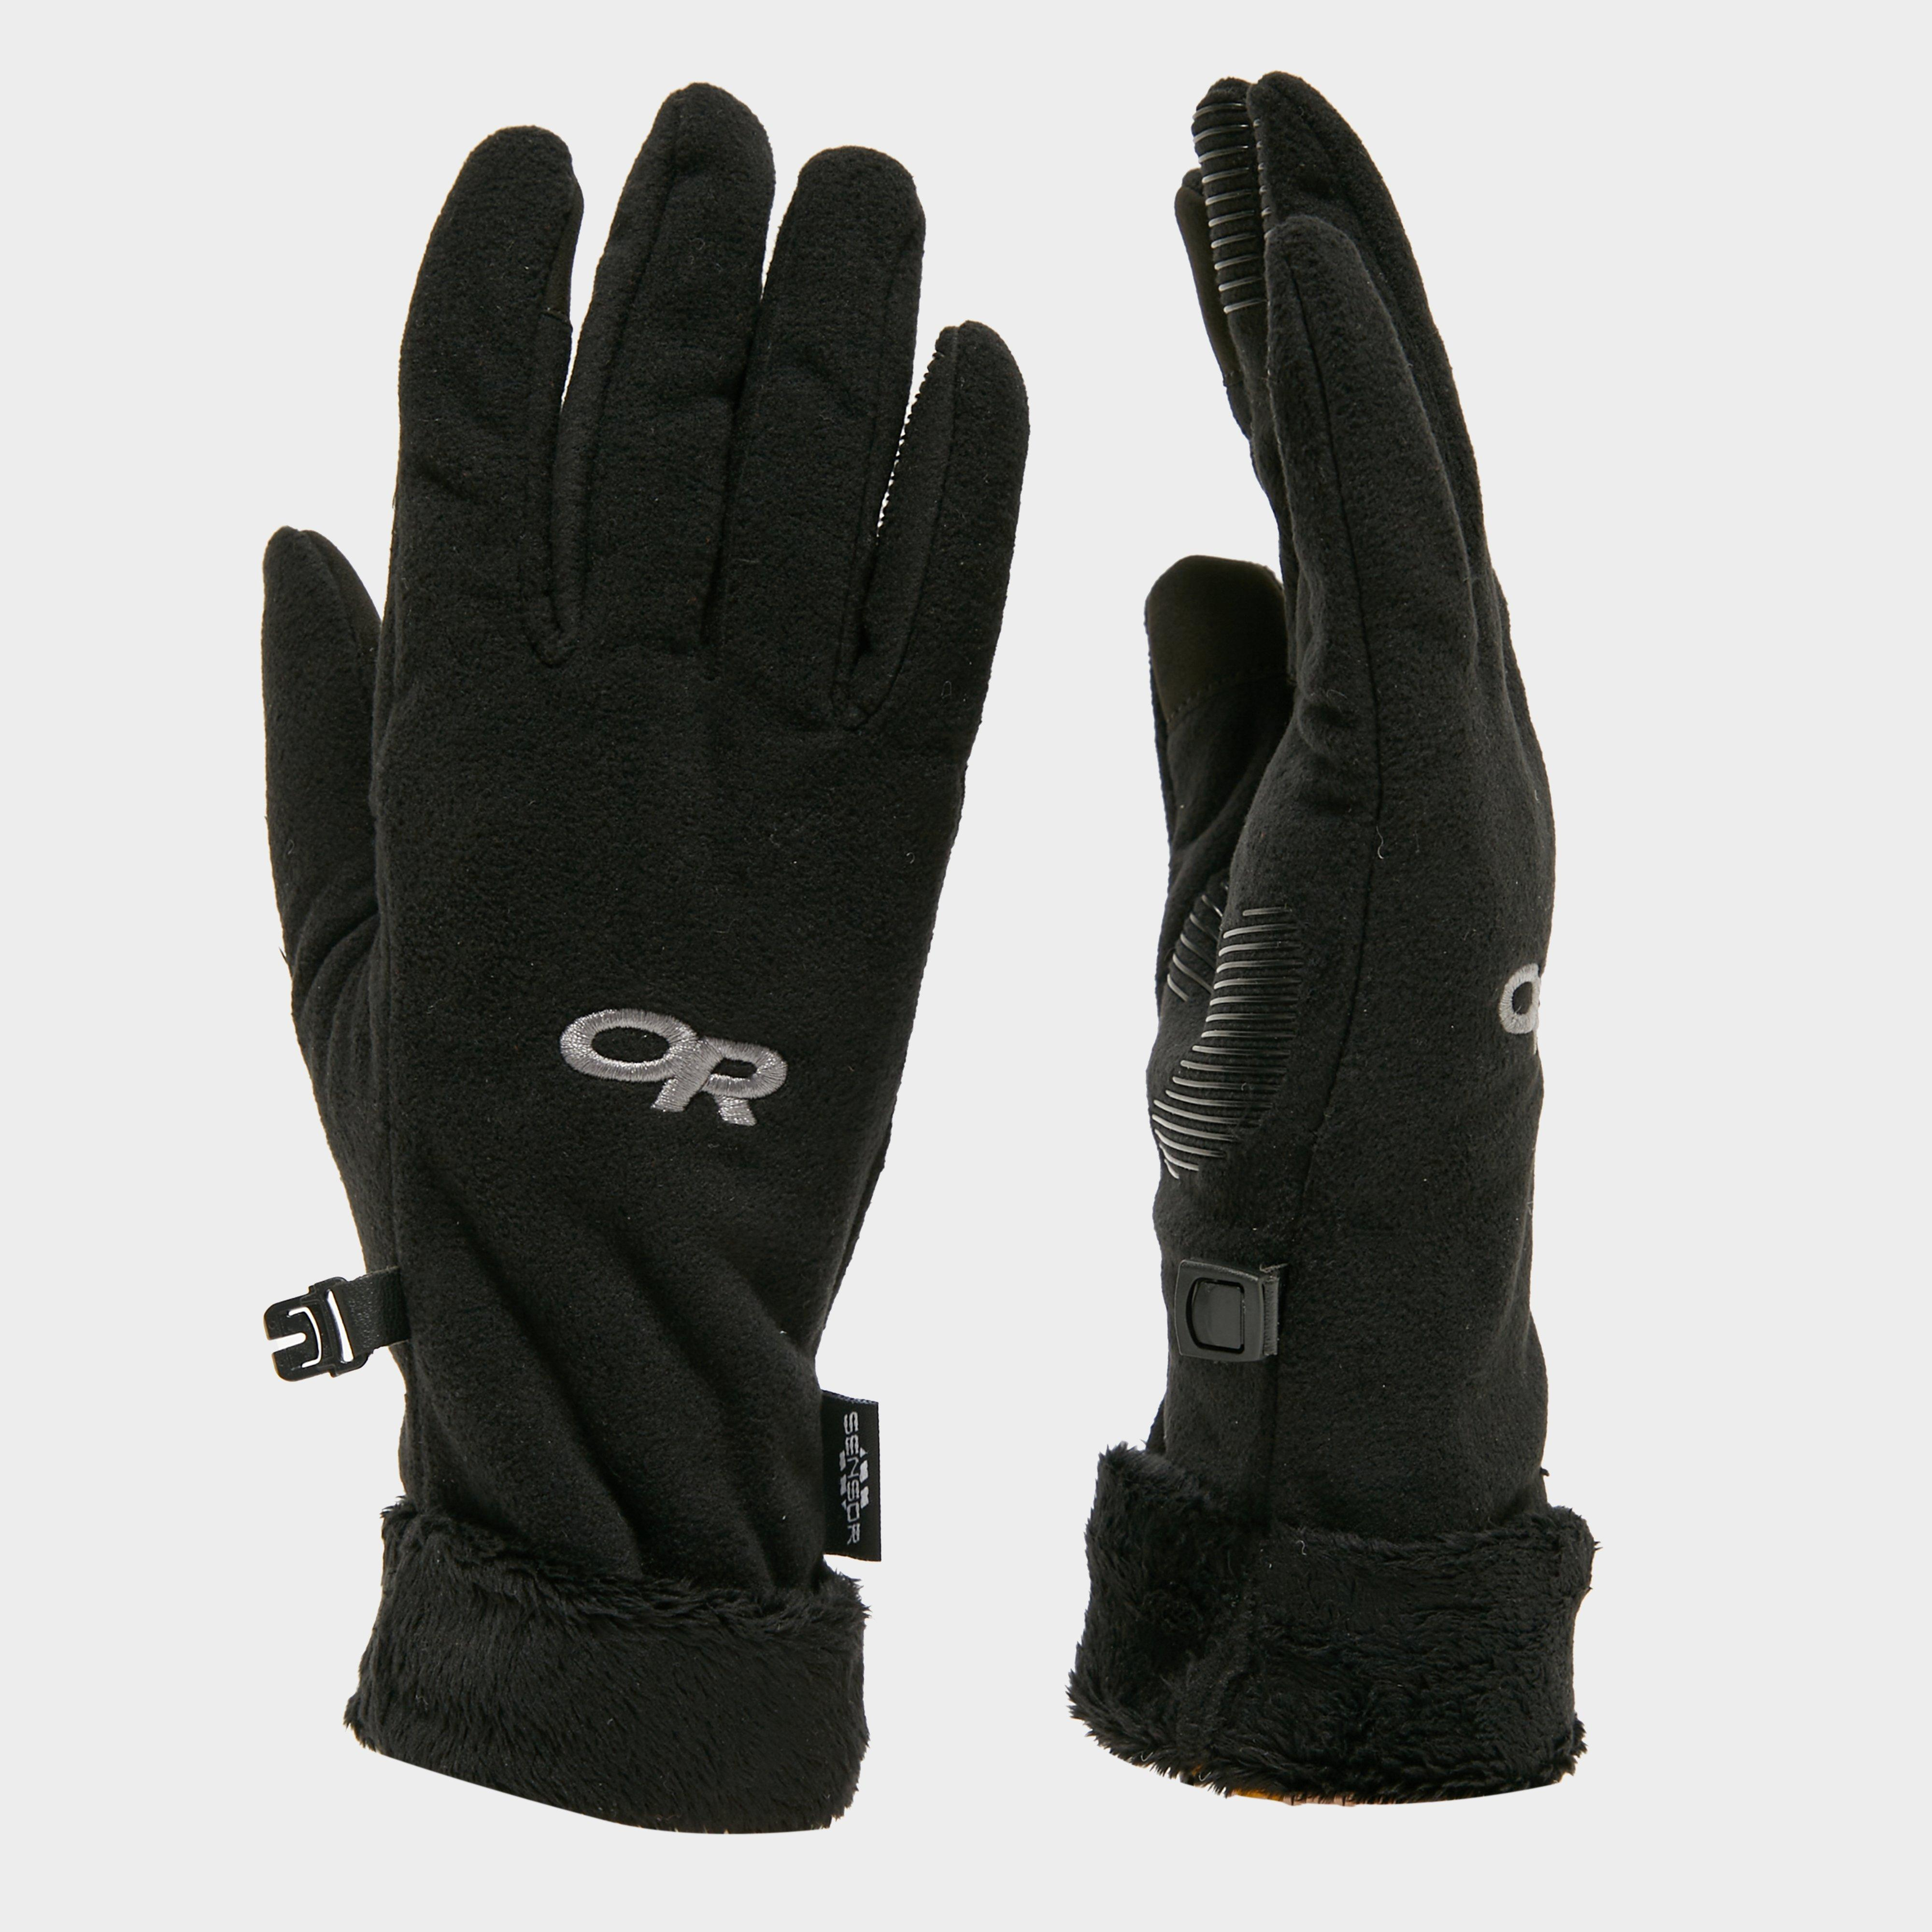 Outdoor Research Outdoor Research Womens Fuzzy Sensor Gloves - Black, Black